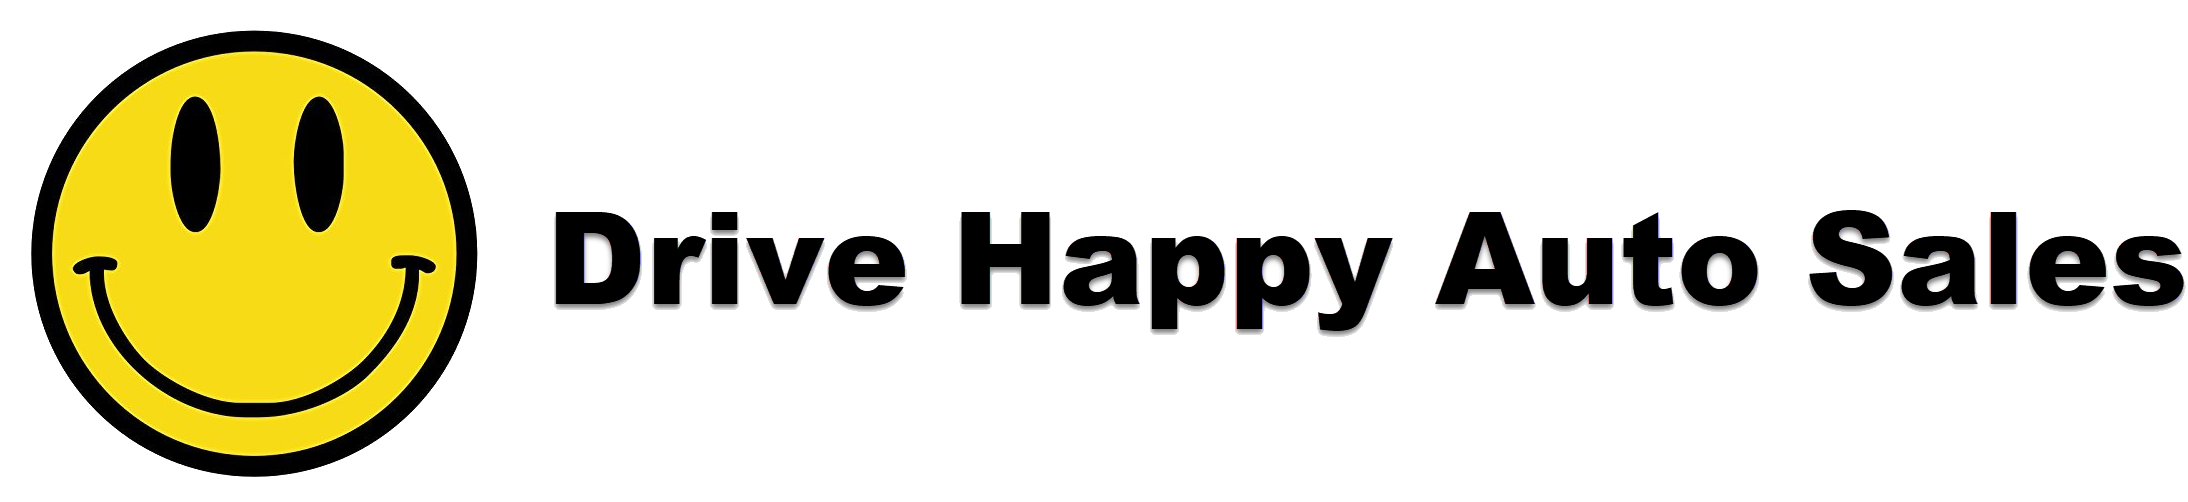 Drive Happy Auto Sales & Repair